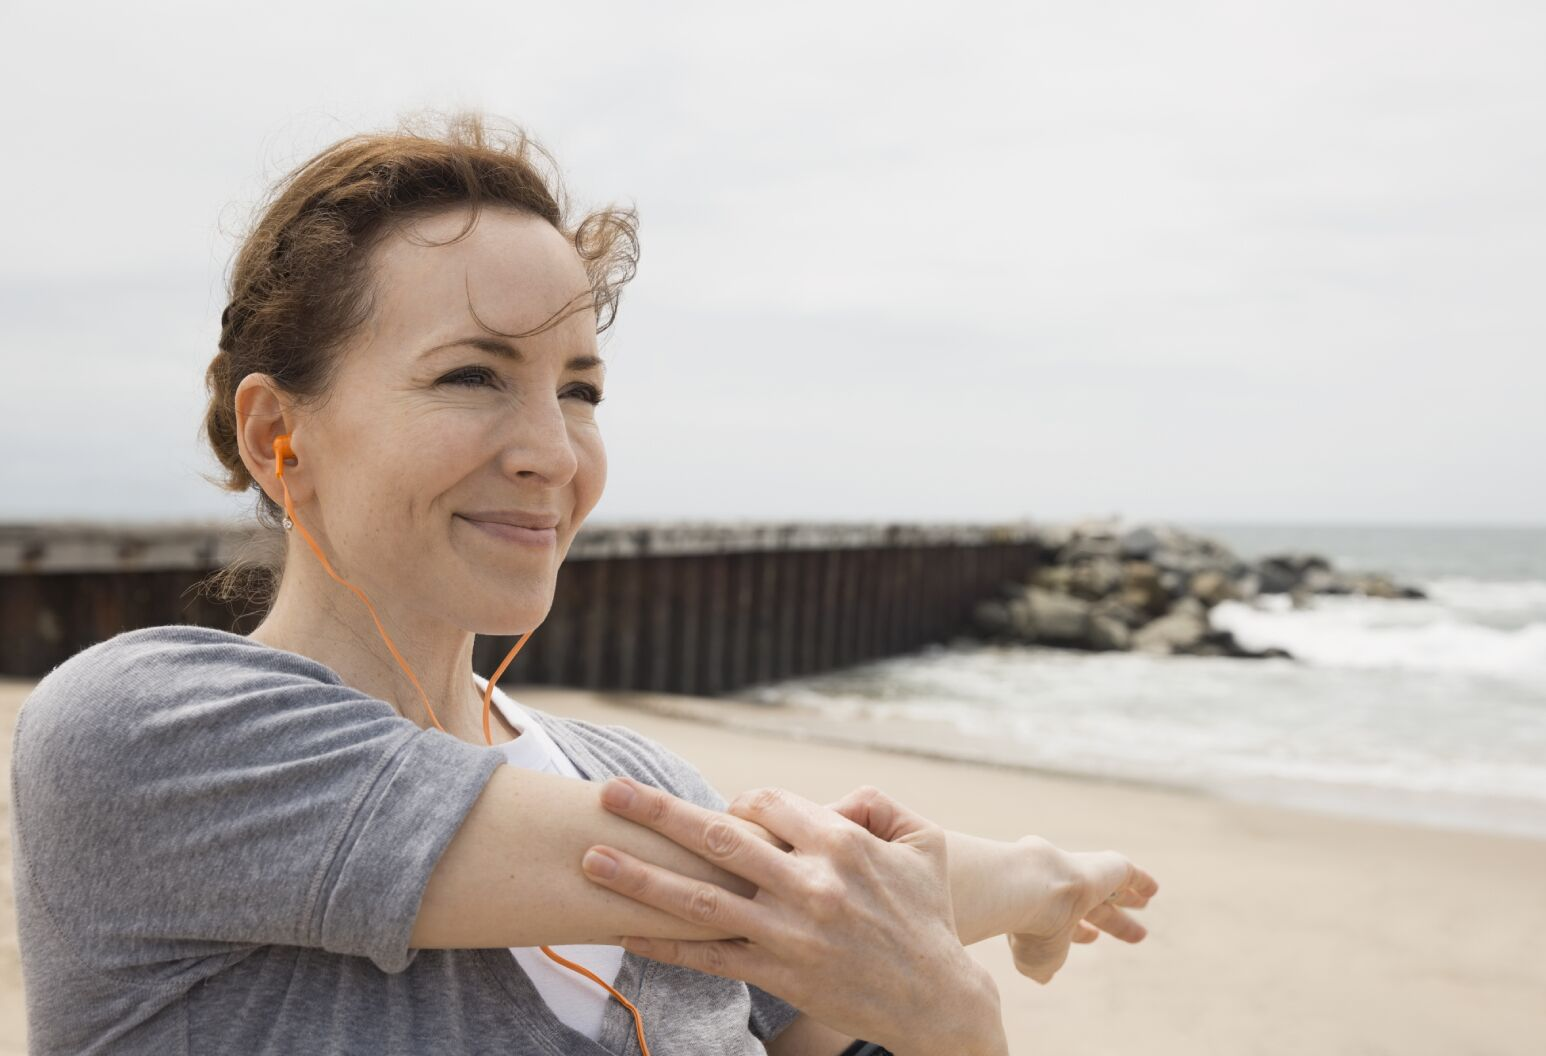 Woman stretching her arm while on a run on a beach